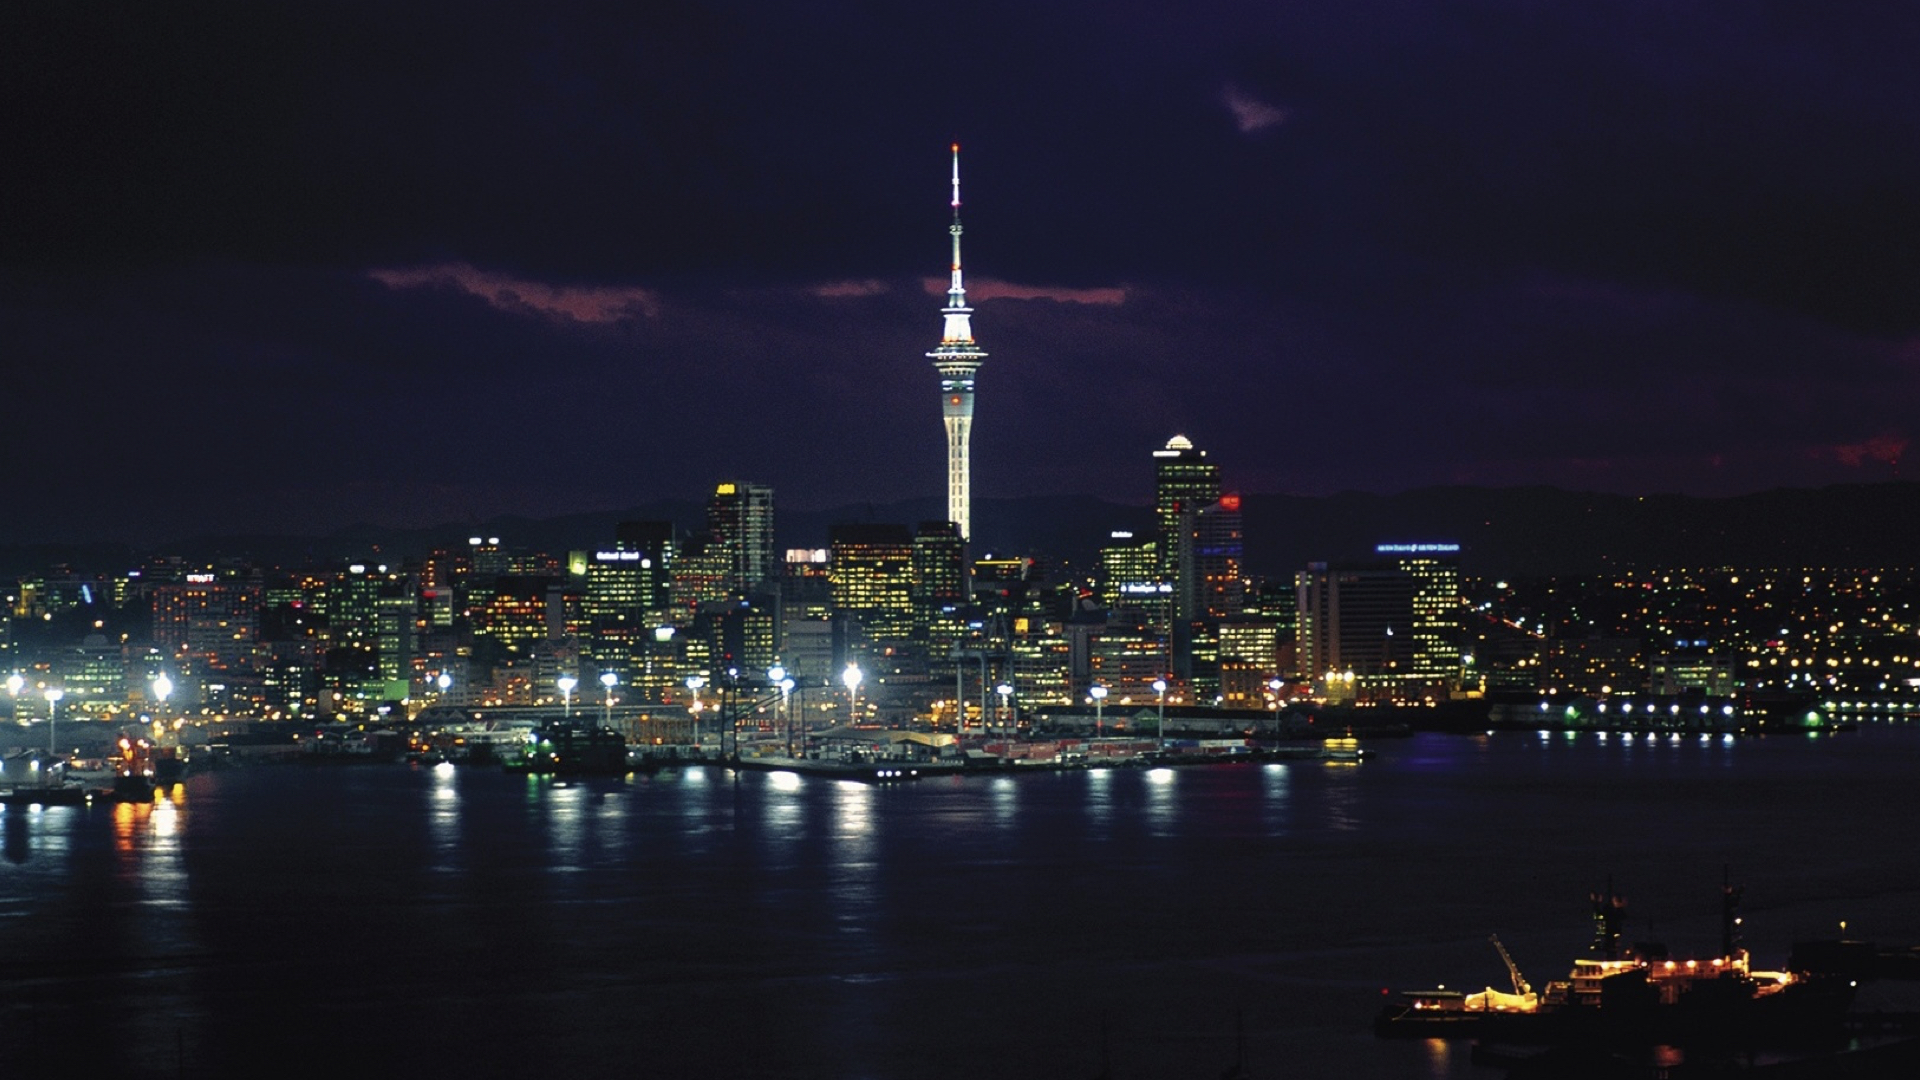 SkyCity Auckland set to operate without restrictions